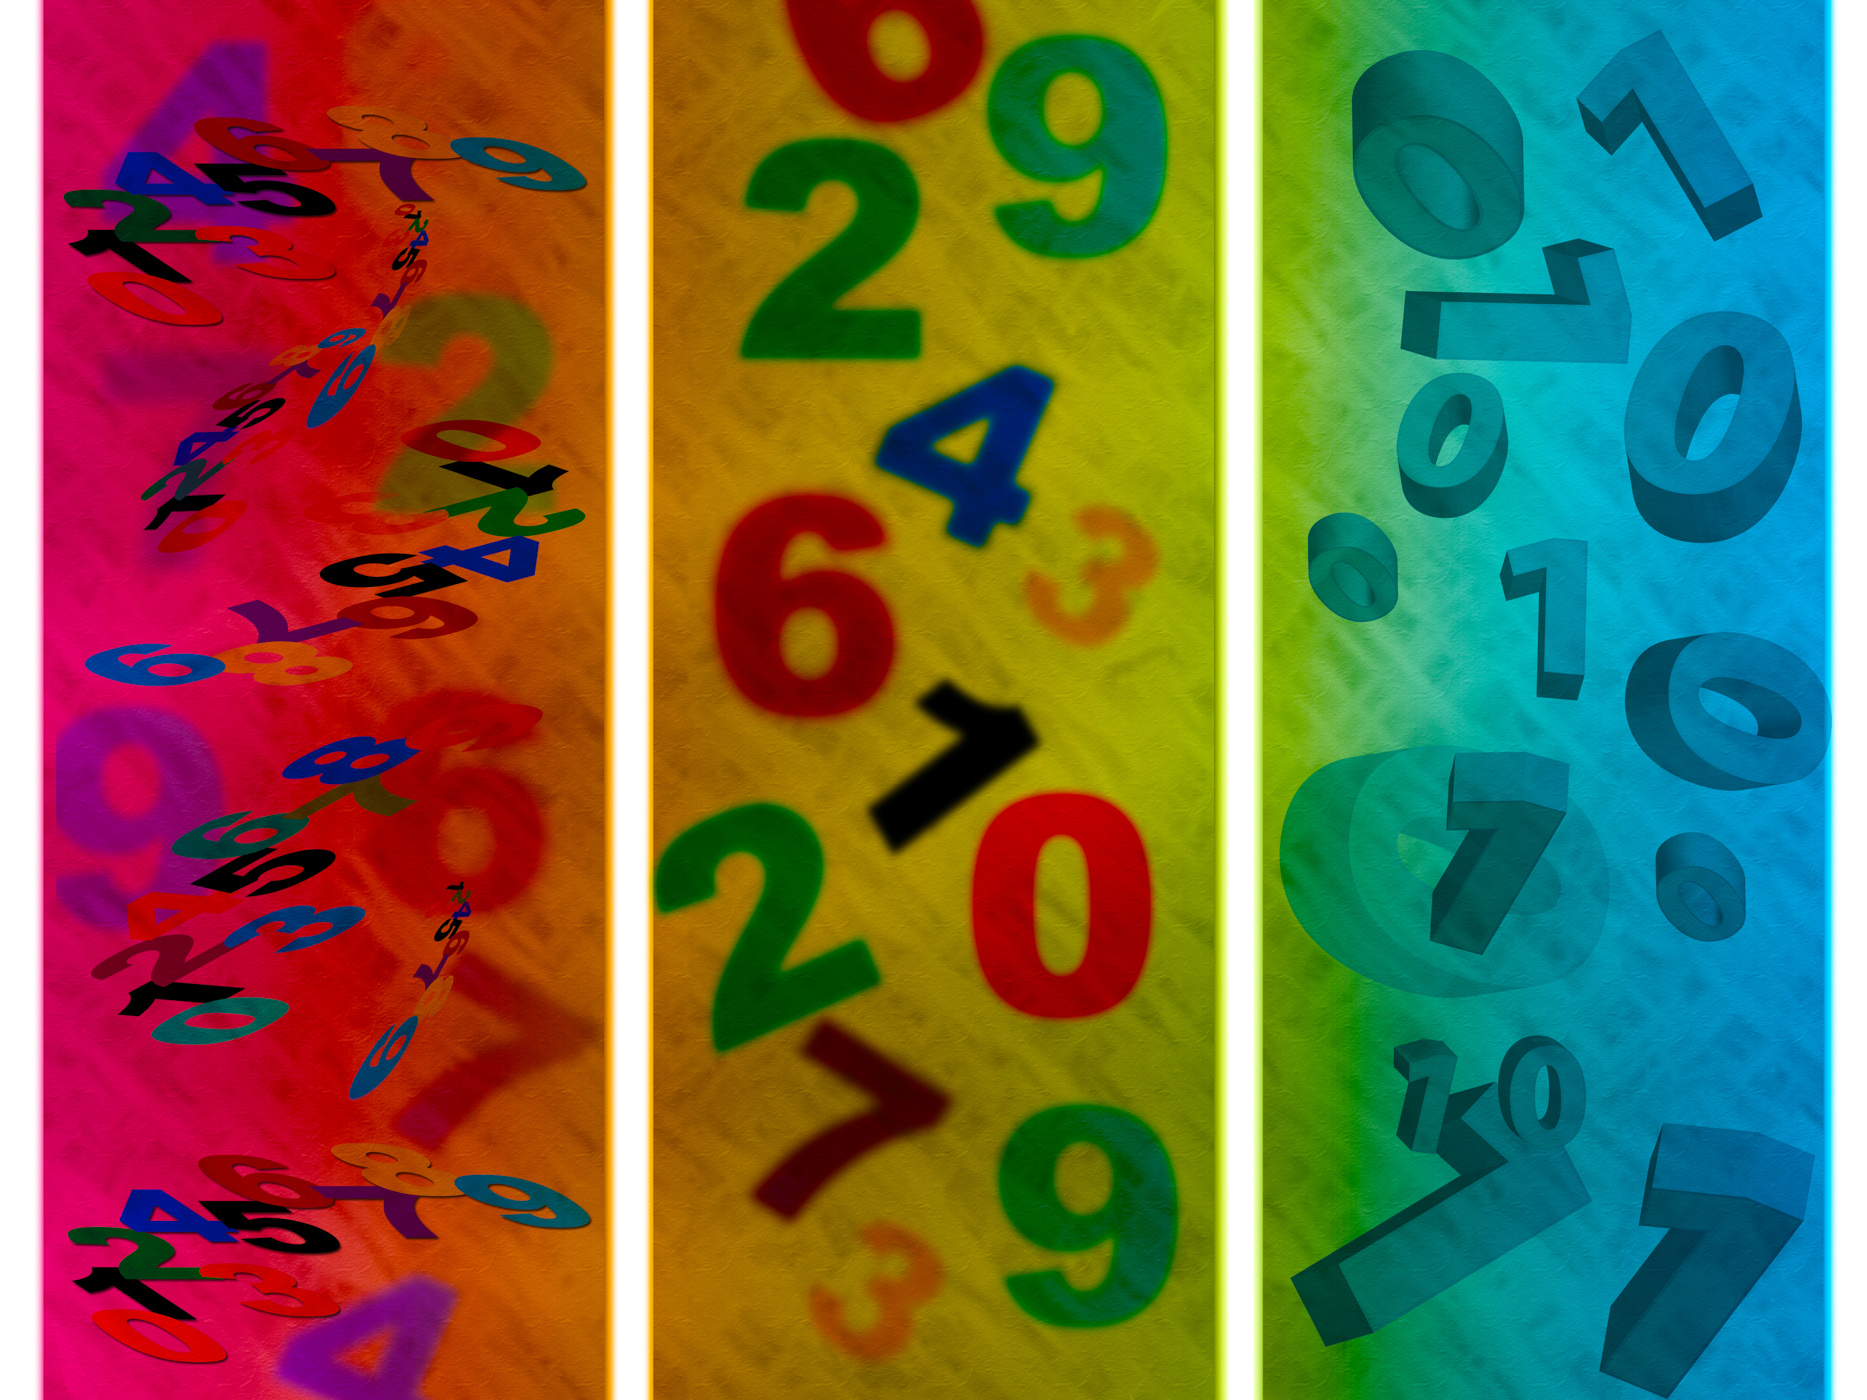 Education Numbers Shows Count Digits And Abstract, Backdrop, Education, Studying, Spectrum, HQ Photo